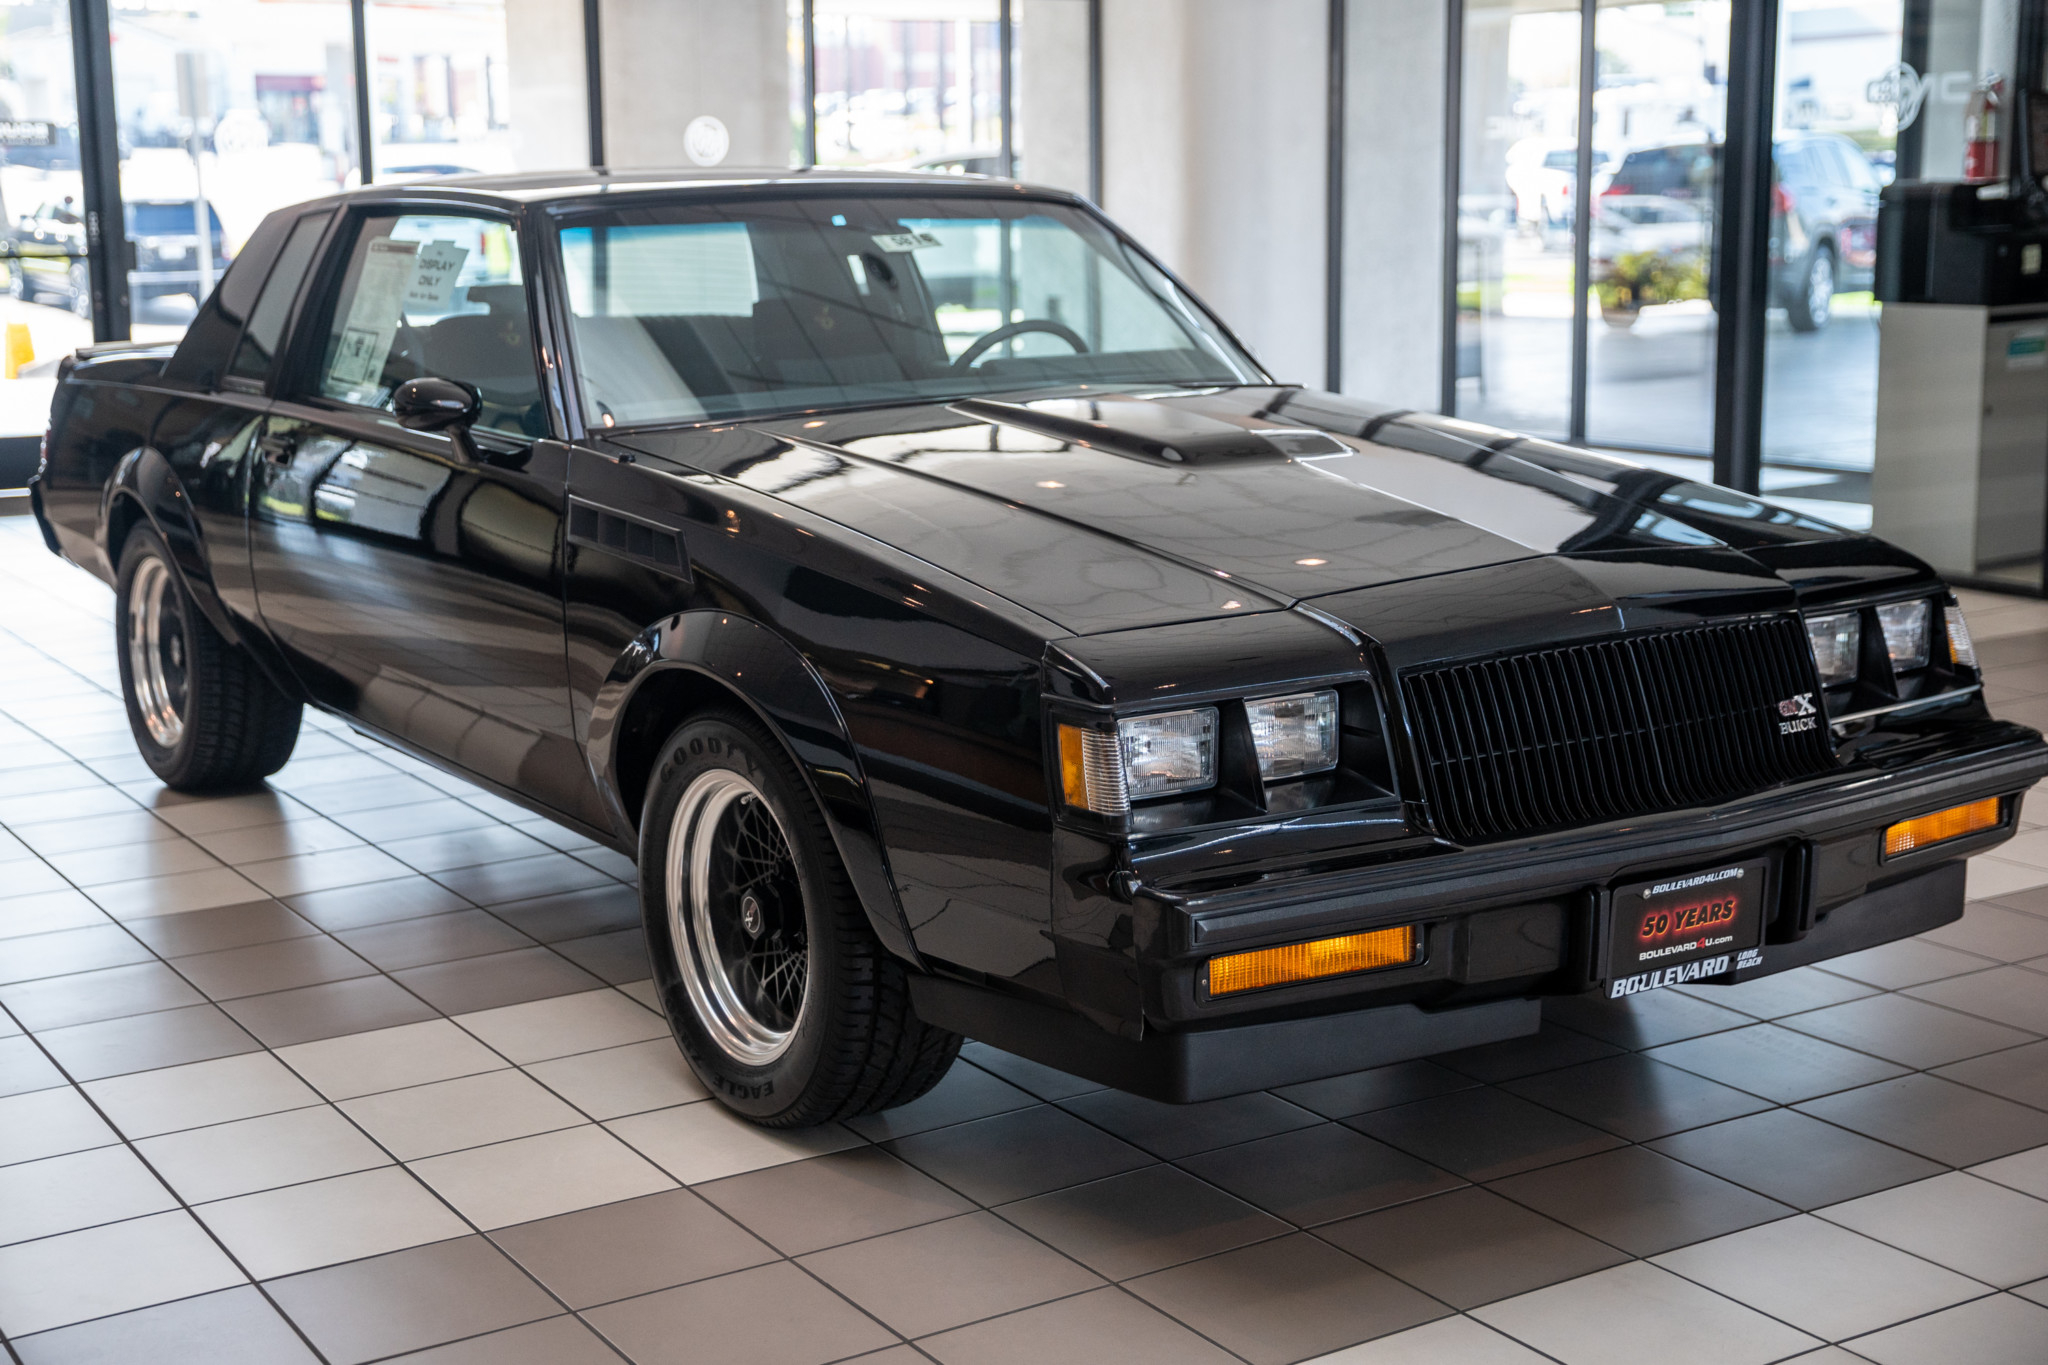 Unsold Buick Gnx With 202 Miles Now For Sale On Bring A Trailer New 2022 Buick Regal Gas Mileage, News, Grand National Specs